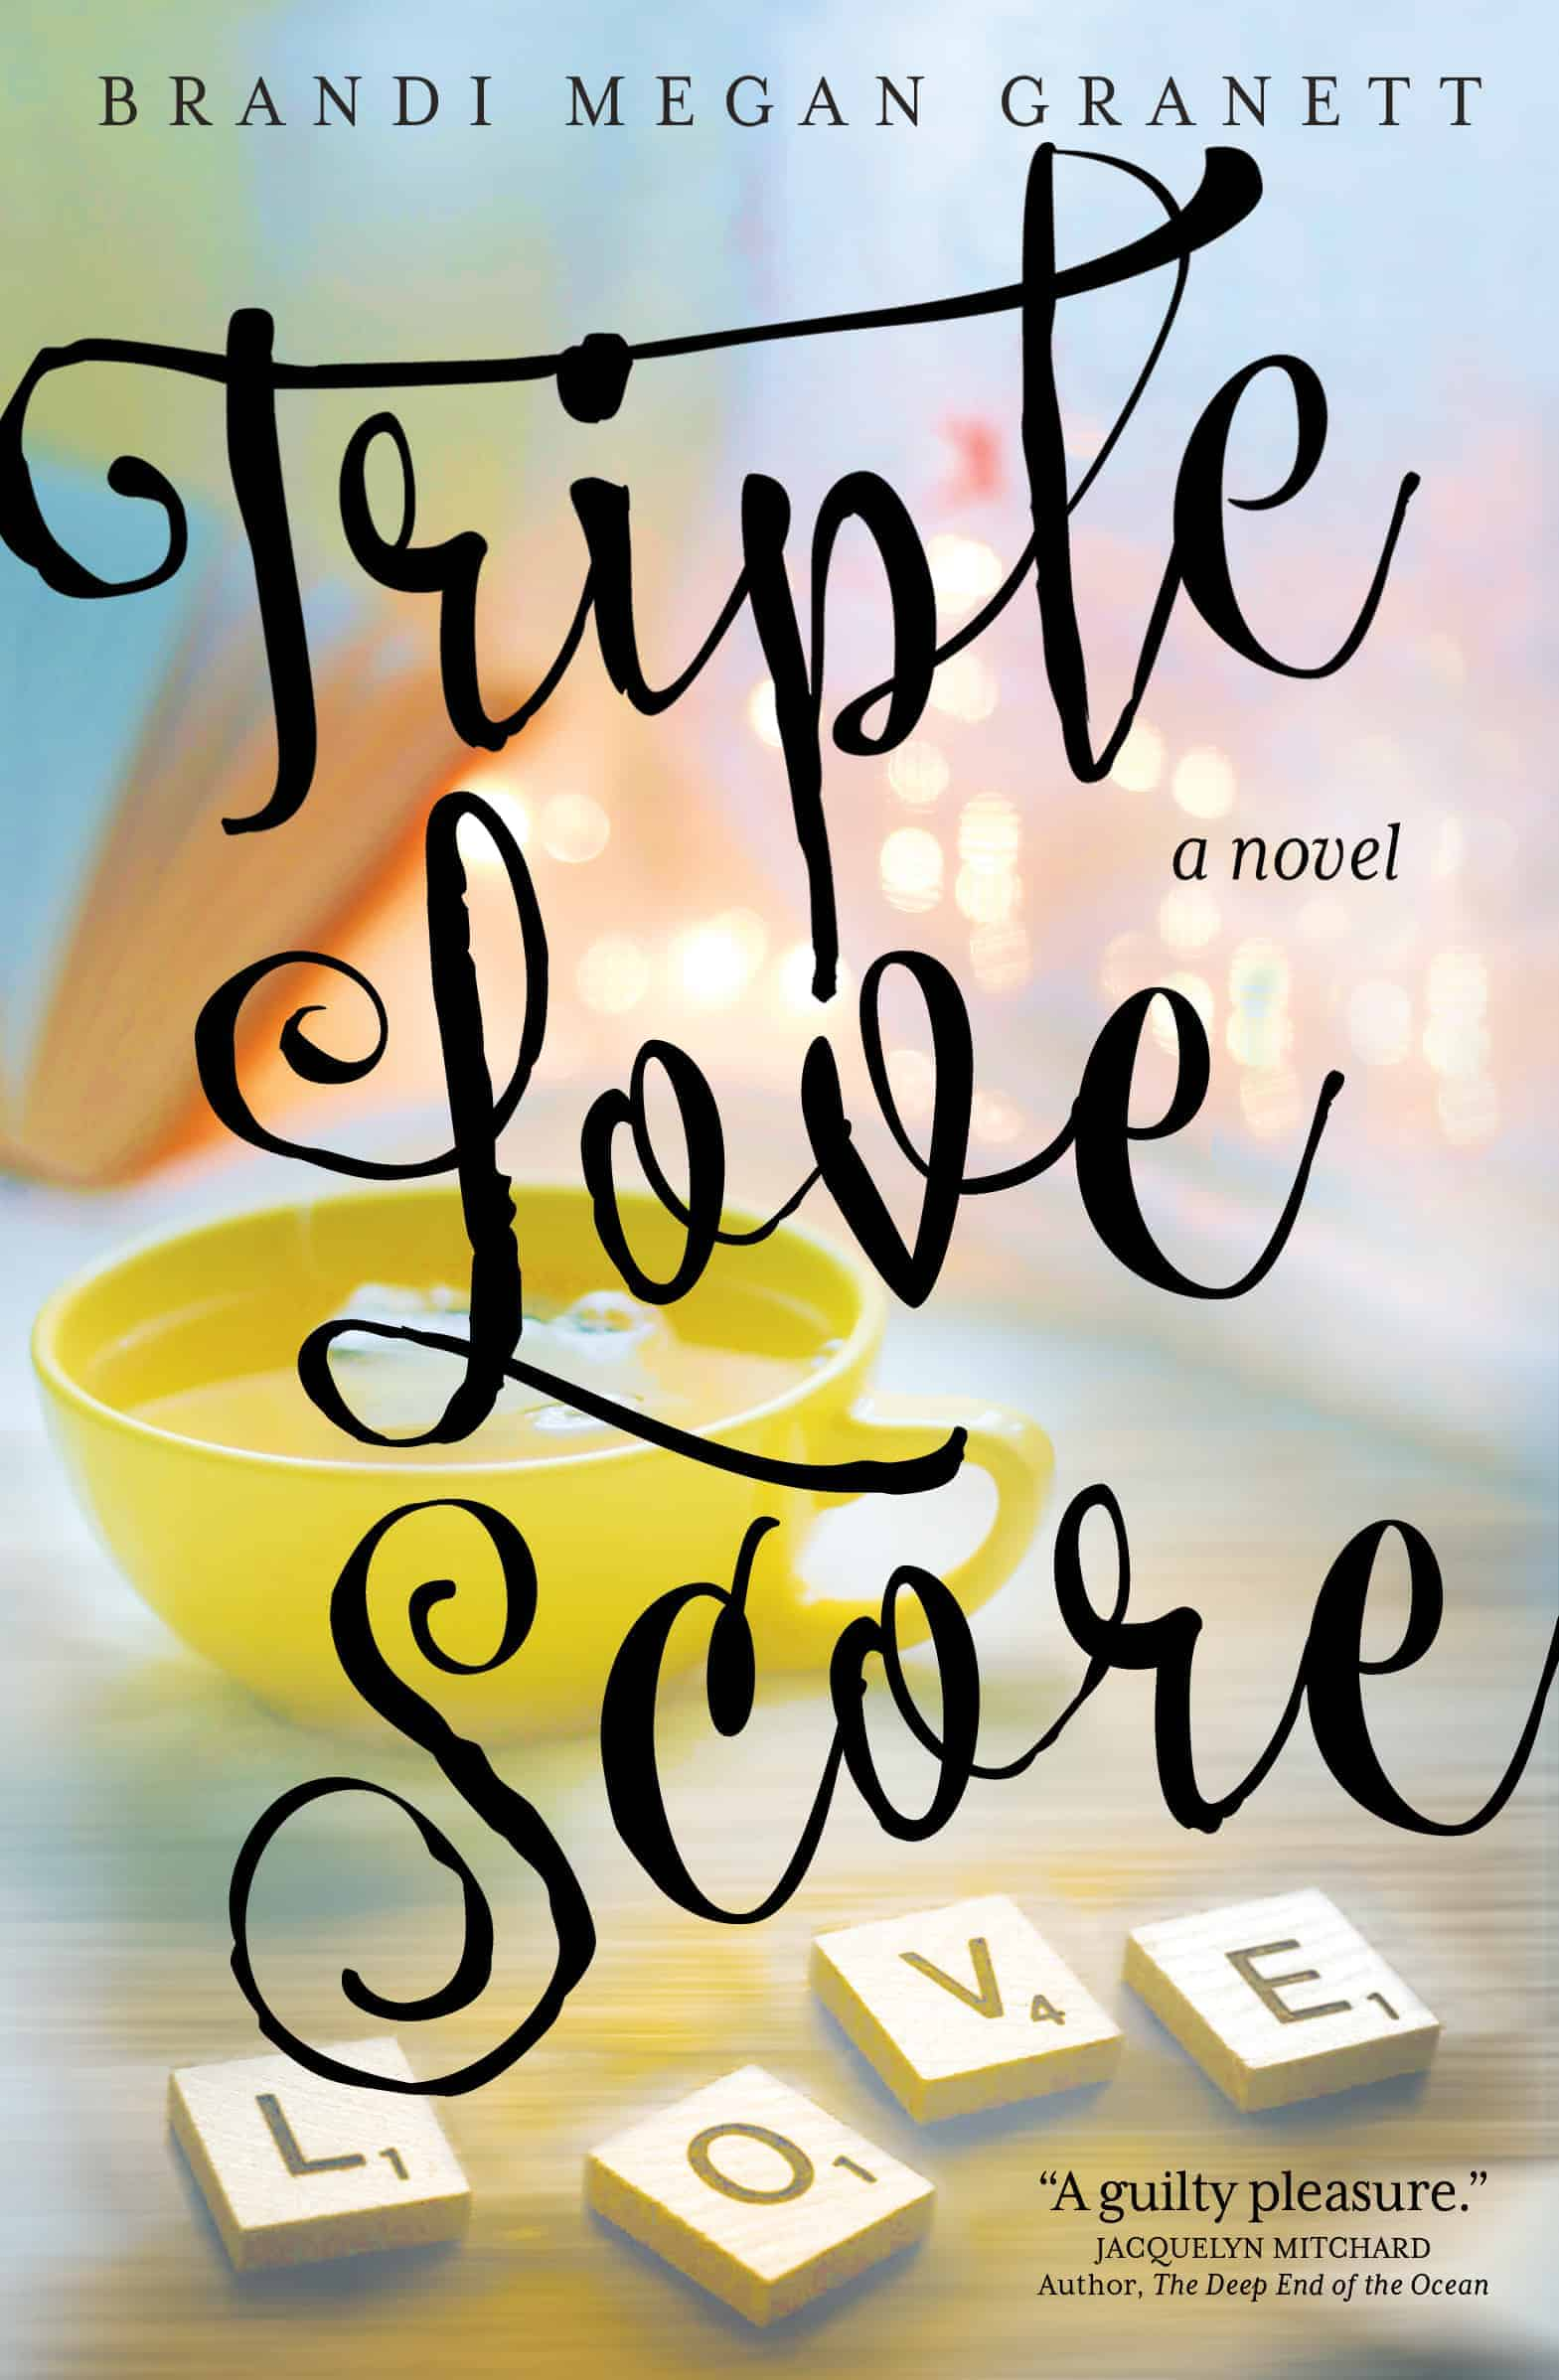 The synopsis suggests Triple Love Score is a light-hearted romance but the excerpt of Triple Love Score shows this book packs a powerful, emotional punch that will have you wanting to read more.